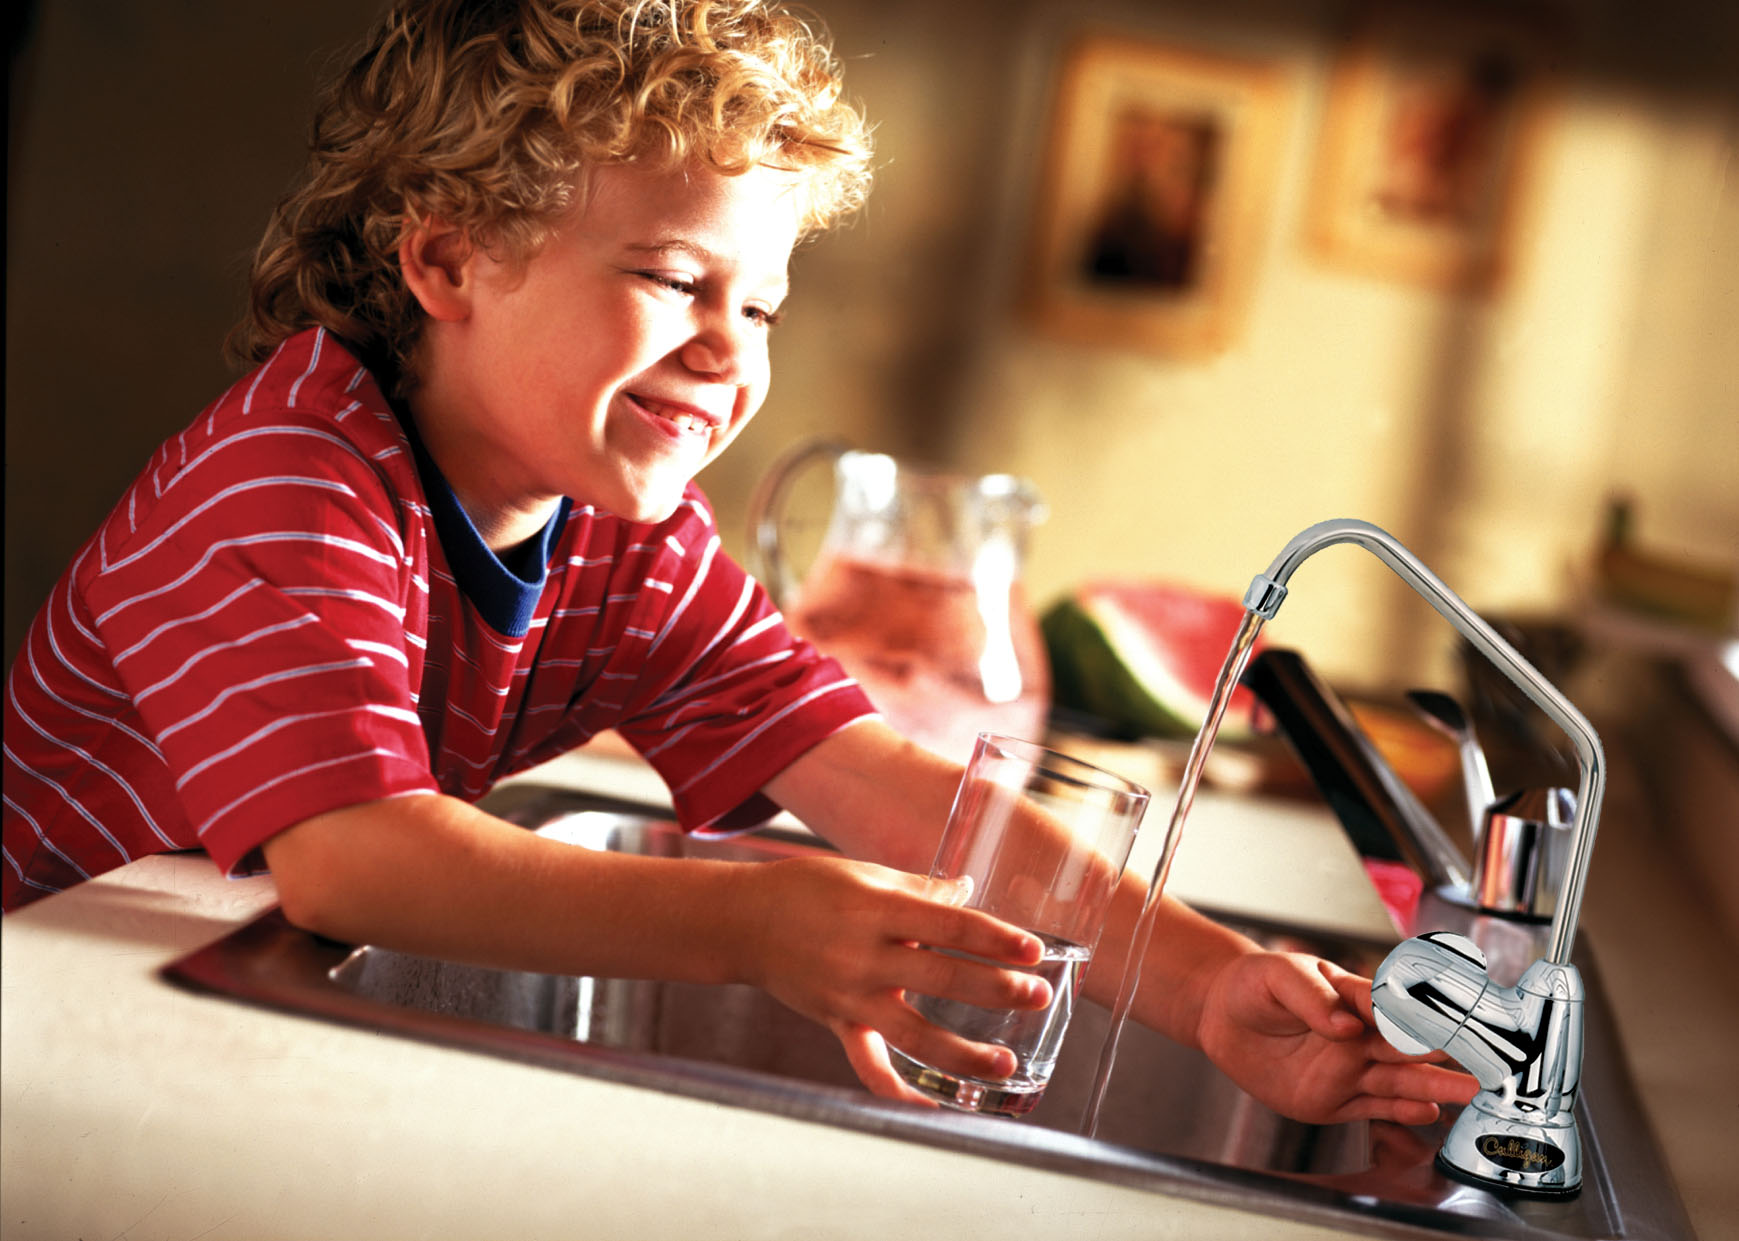 Boy Drinking Culligan Water